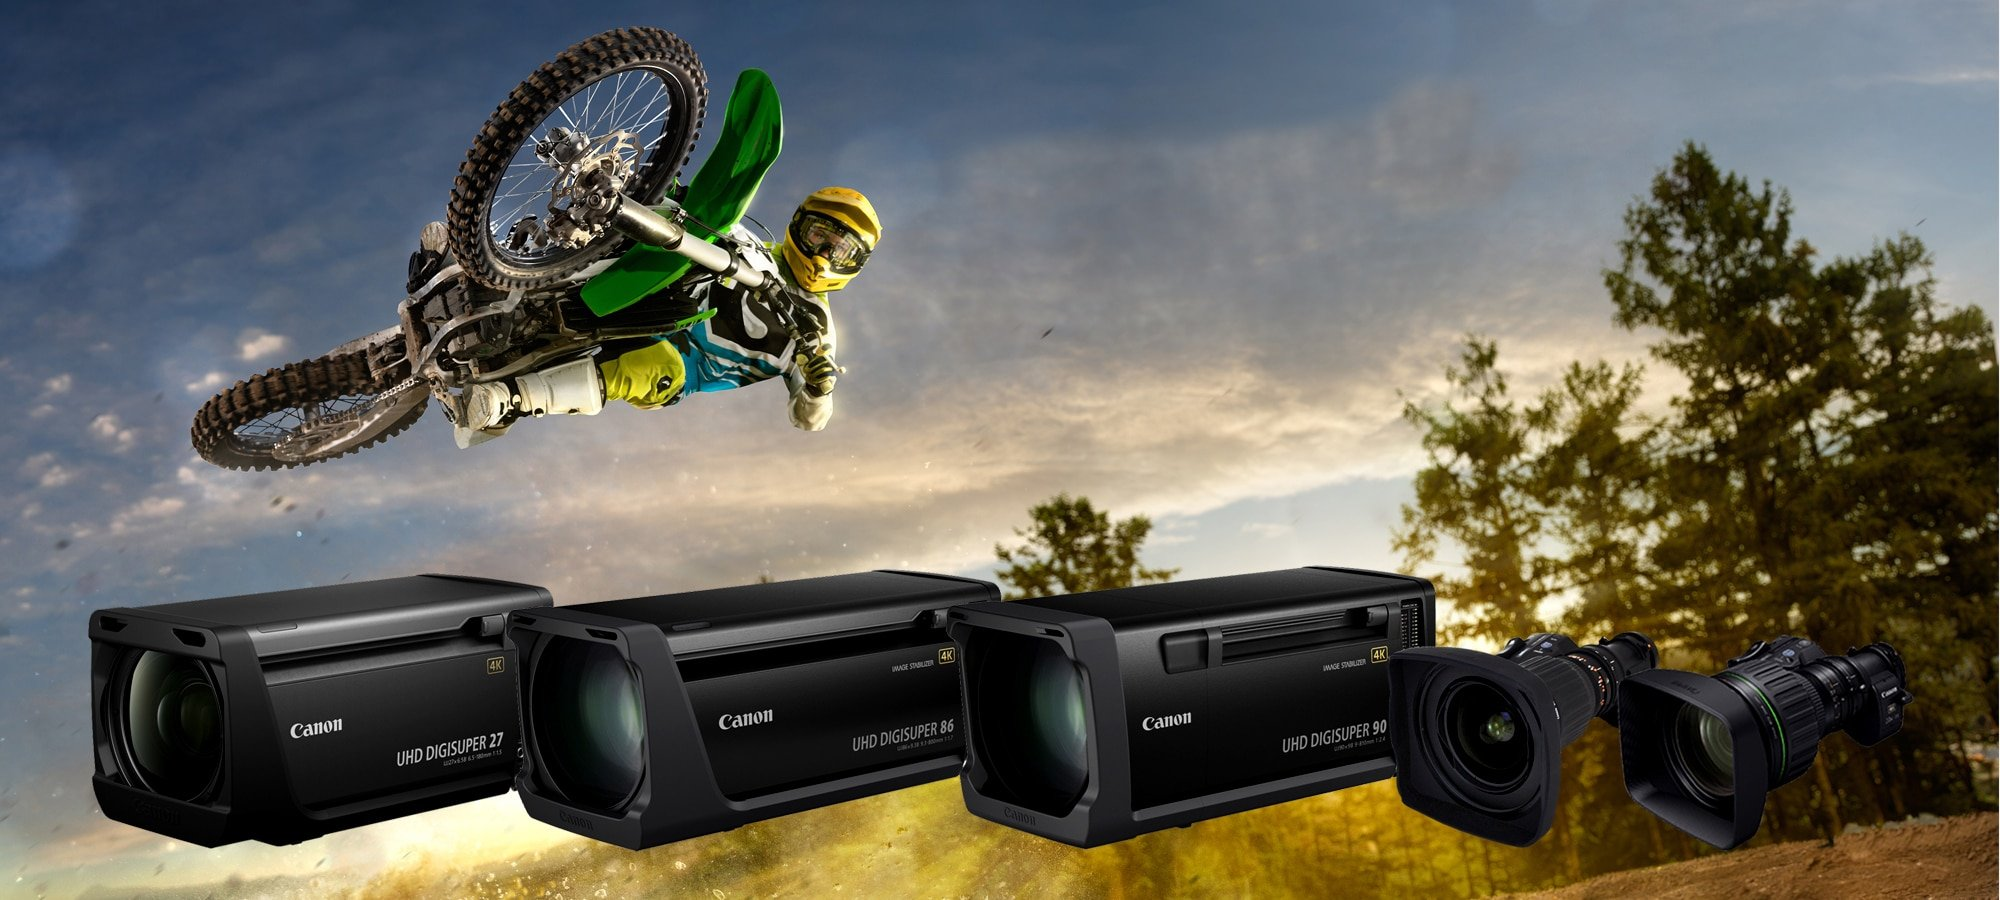 HD and 4K Broadcast Equipment Hire: Canon 4K Lenses